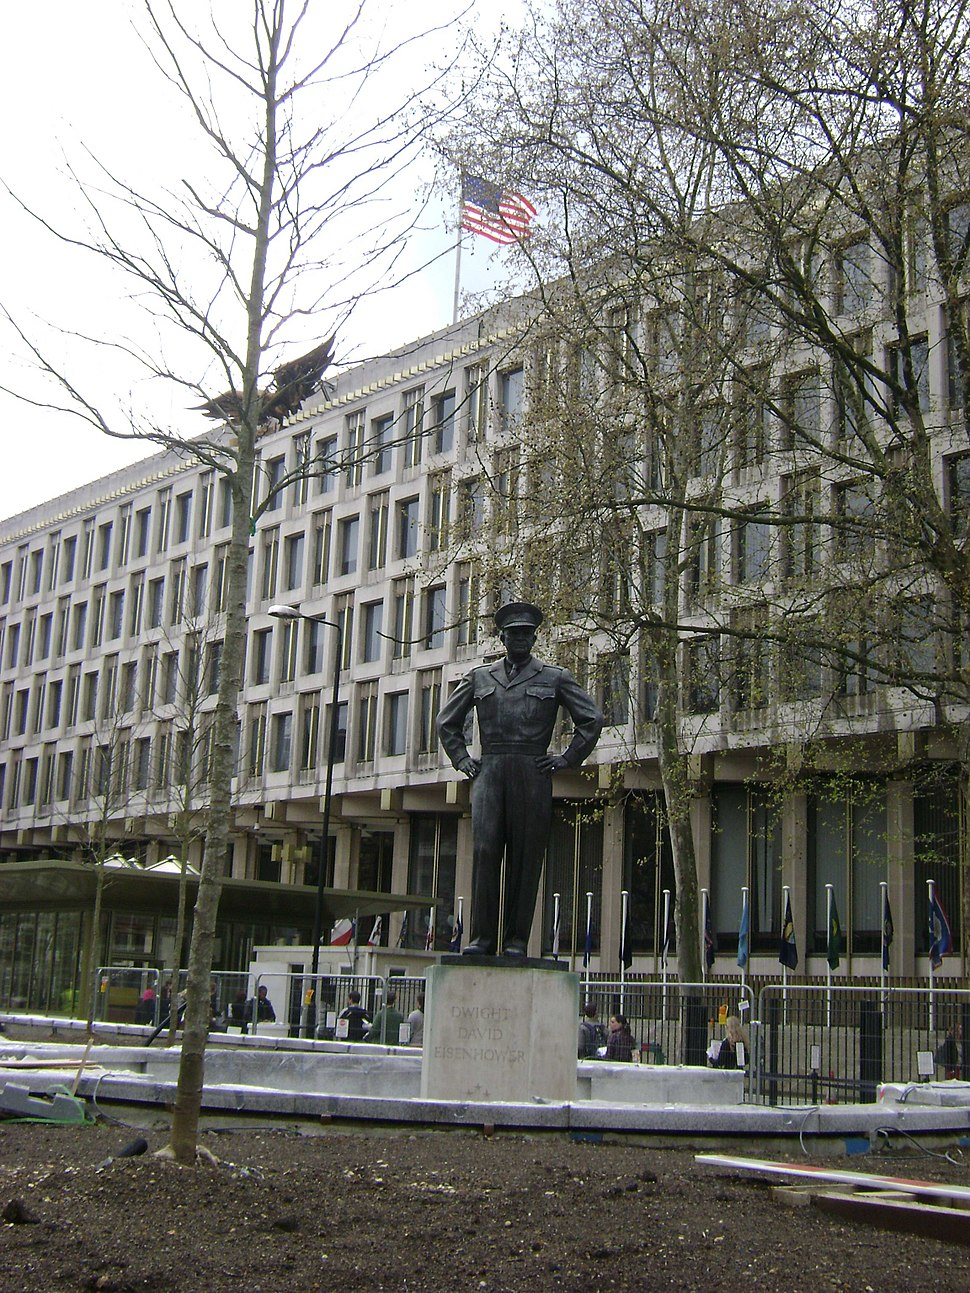 American Embassy, statue of Dwight D. Eisenhower